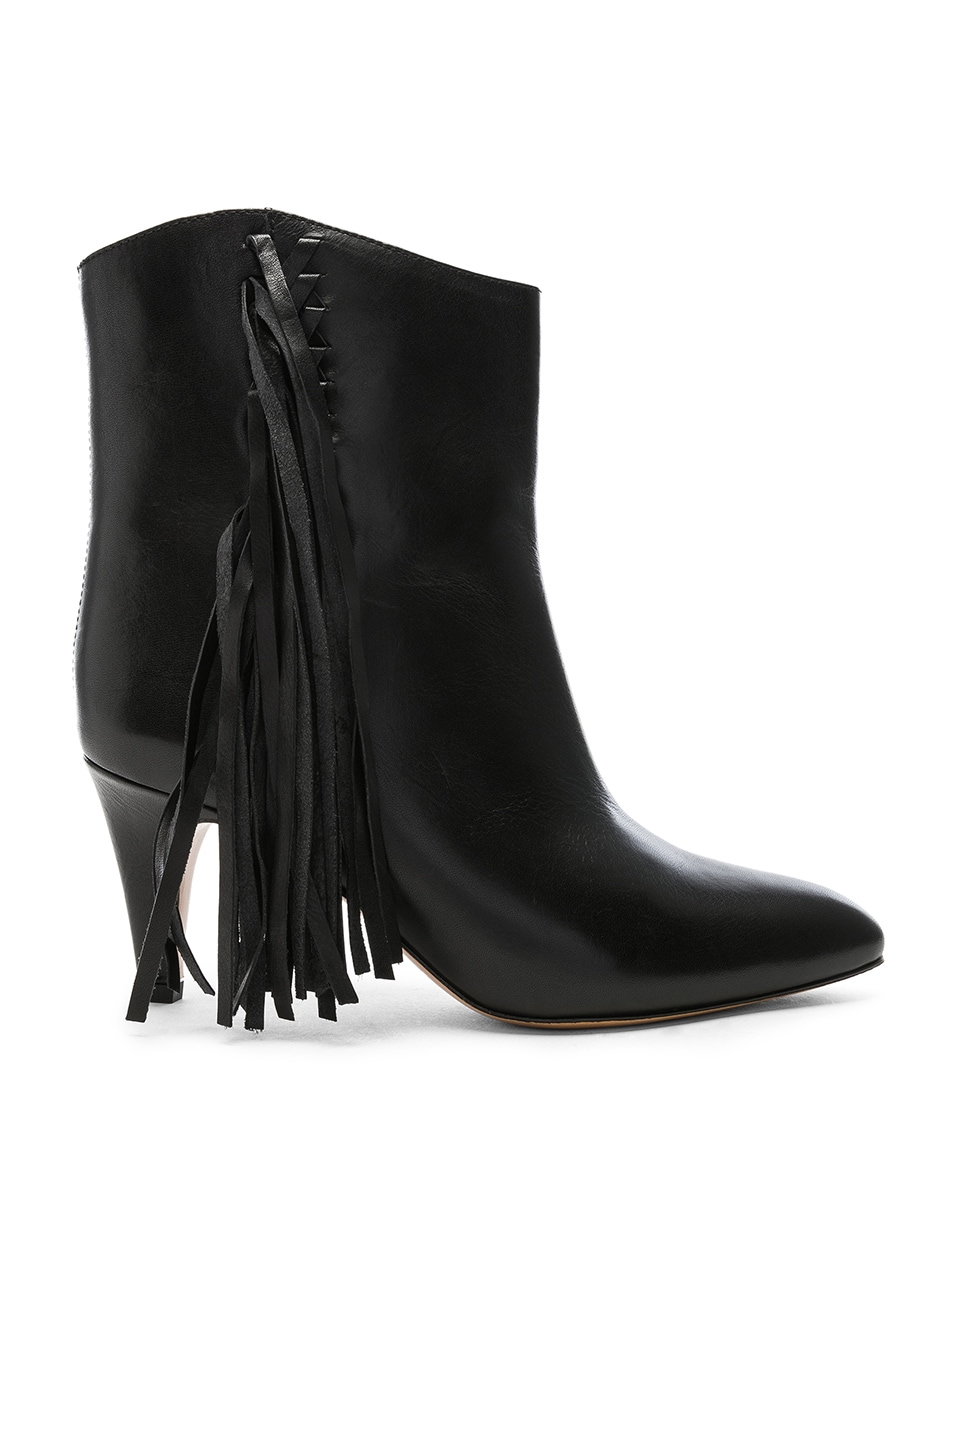 Image 1 of Isabel Marant Leather Dringe Boots in Black